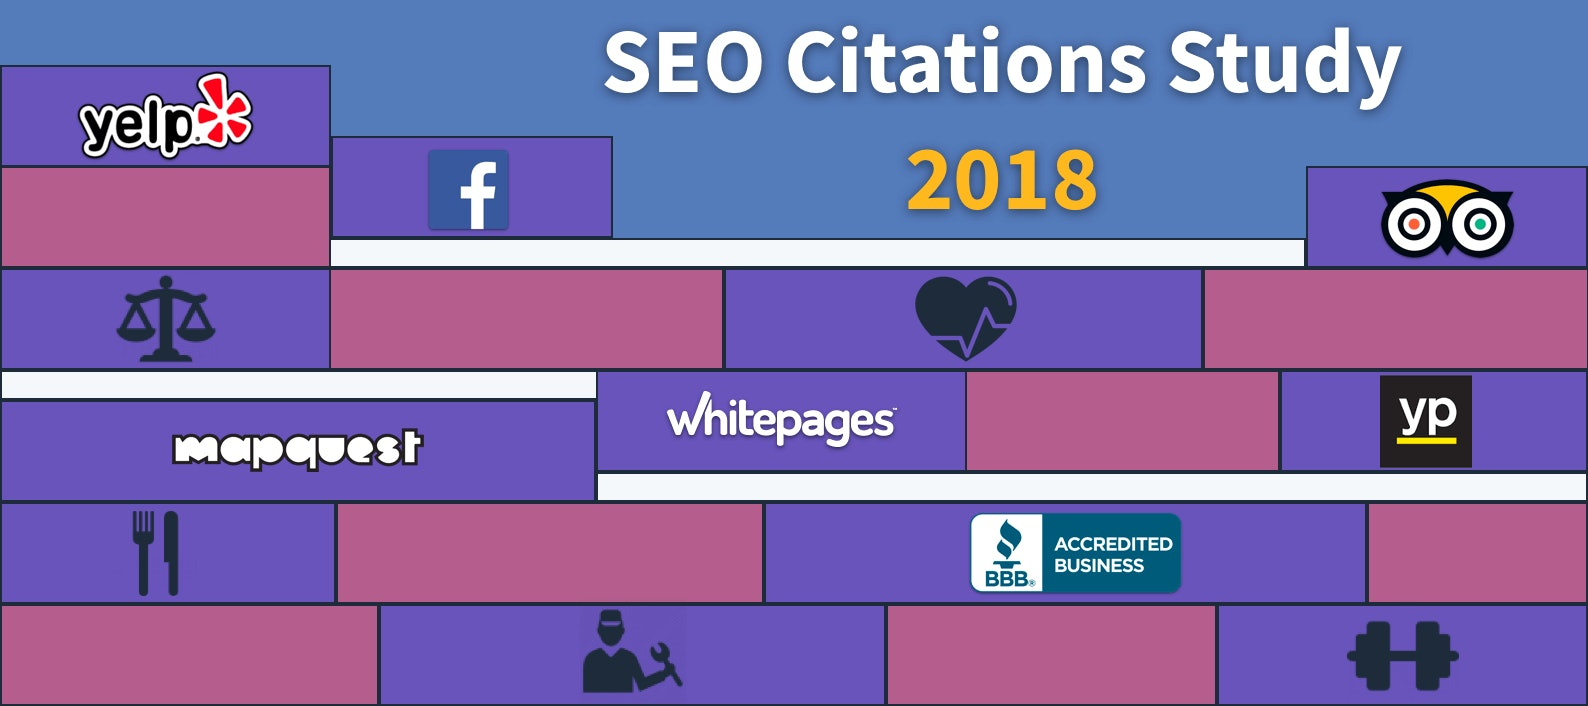 SEO Citations Study: How Many Citations Do Local Businesses Have?